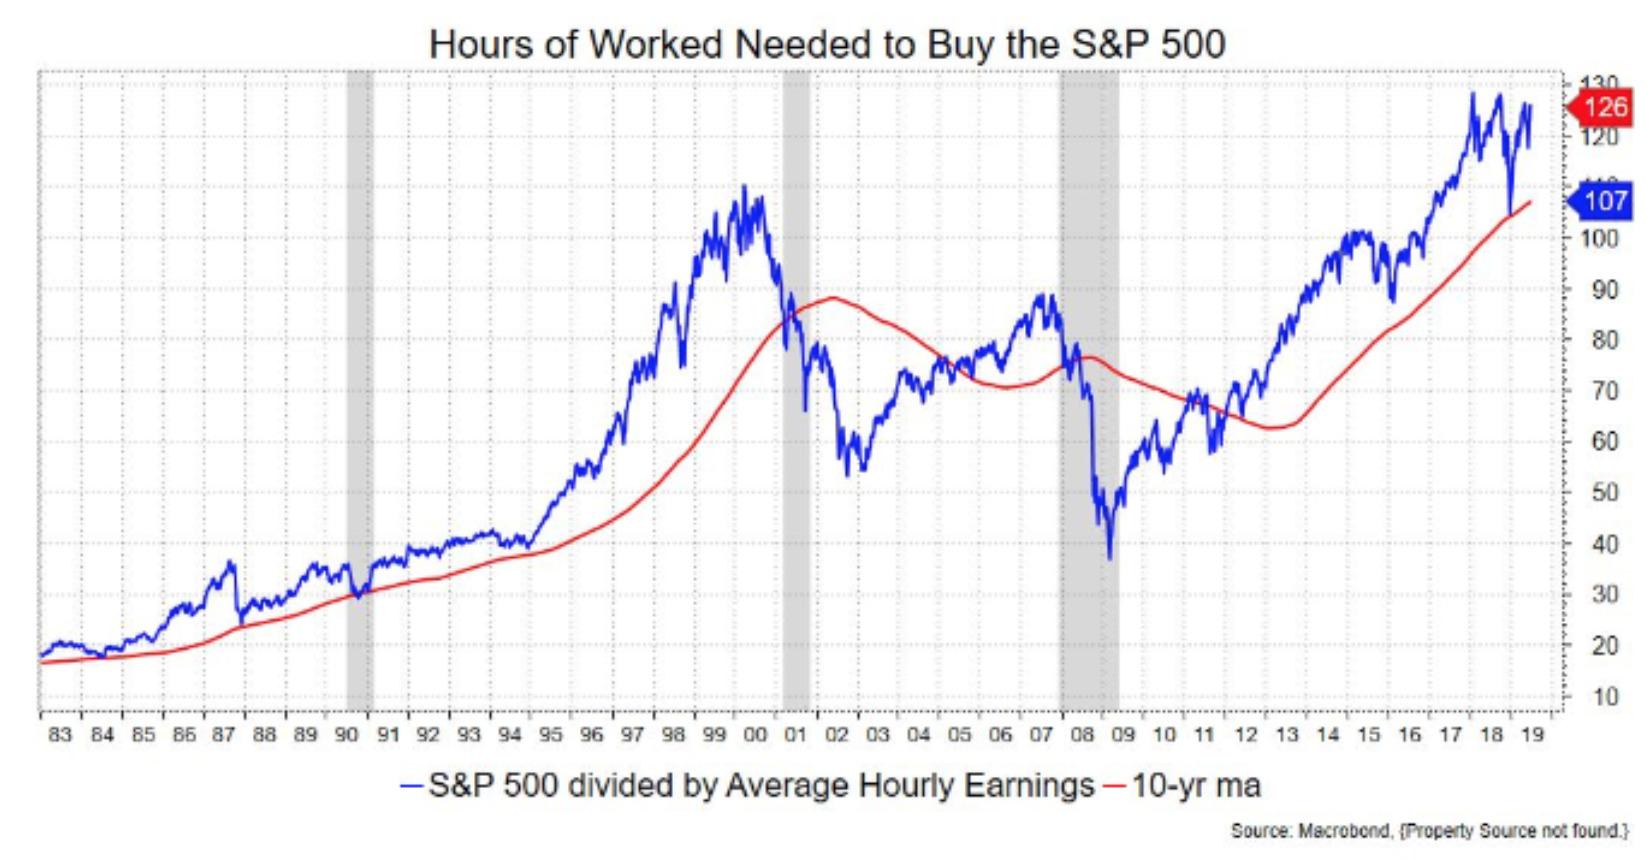 Hours of work needed to buy the S&P 500